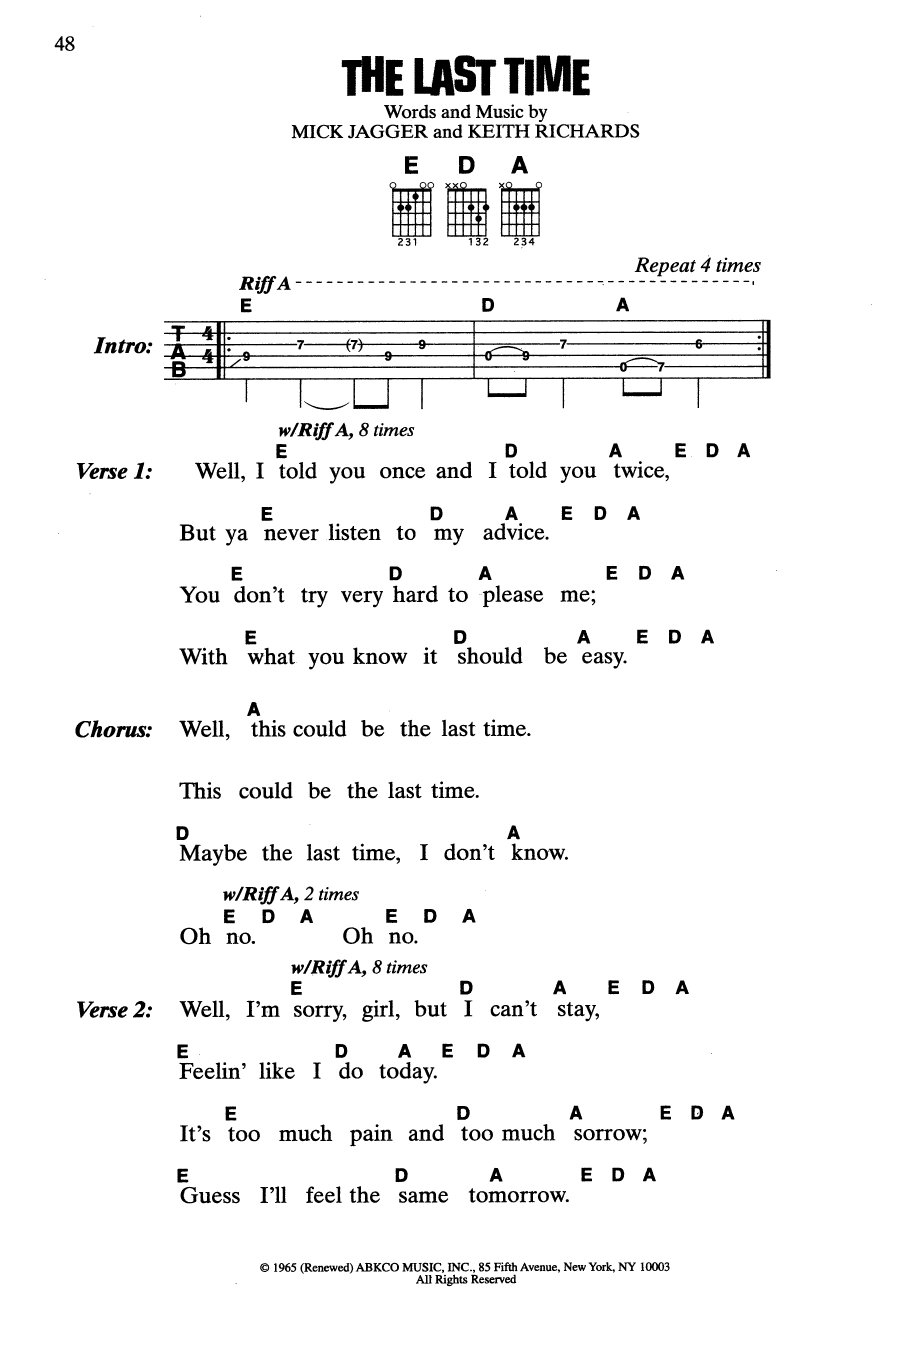 Time after time chords